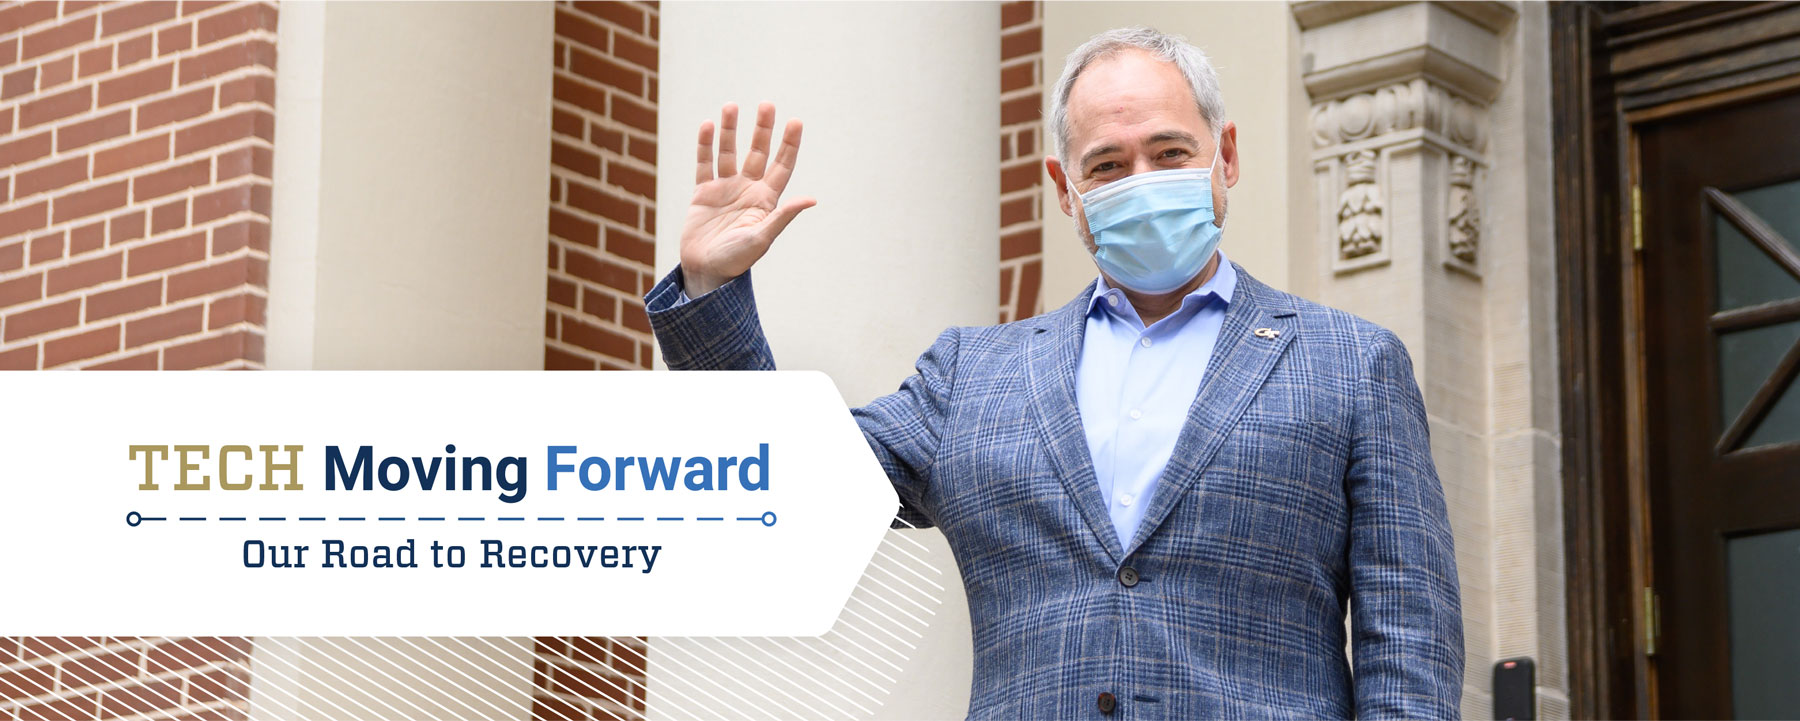 President Cabrera in a face mask welcoming people safely back to campus with a hand wave